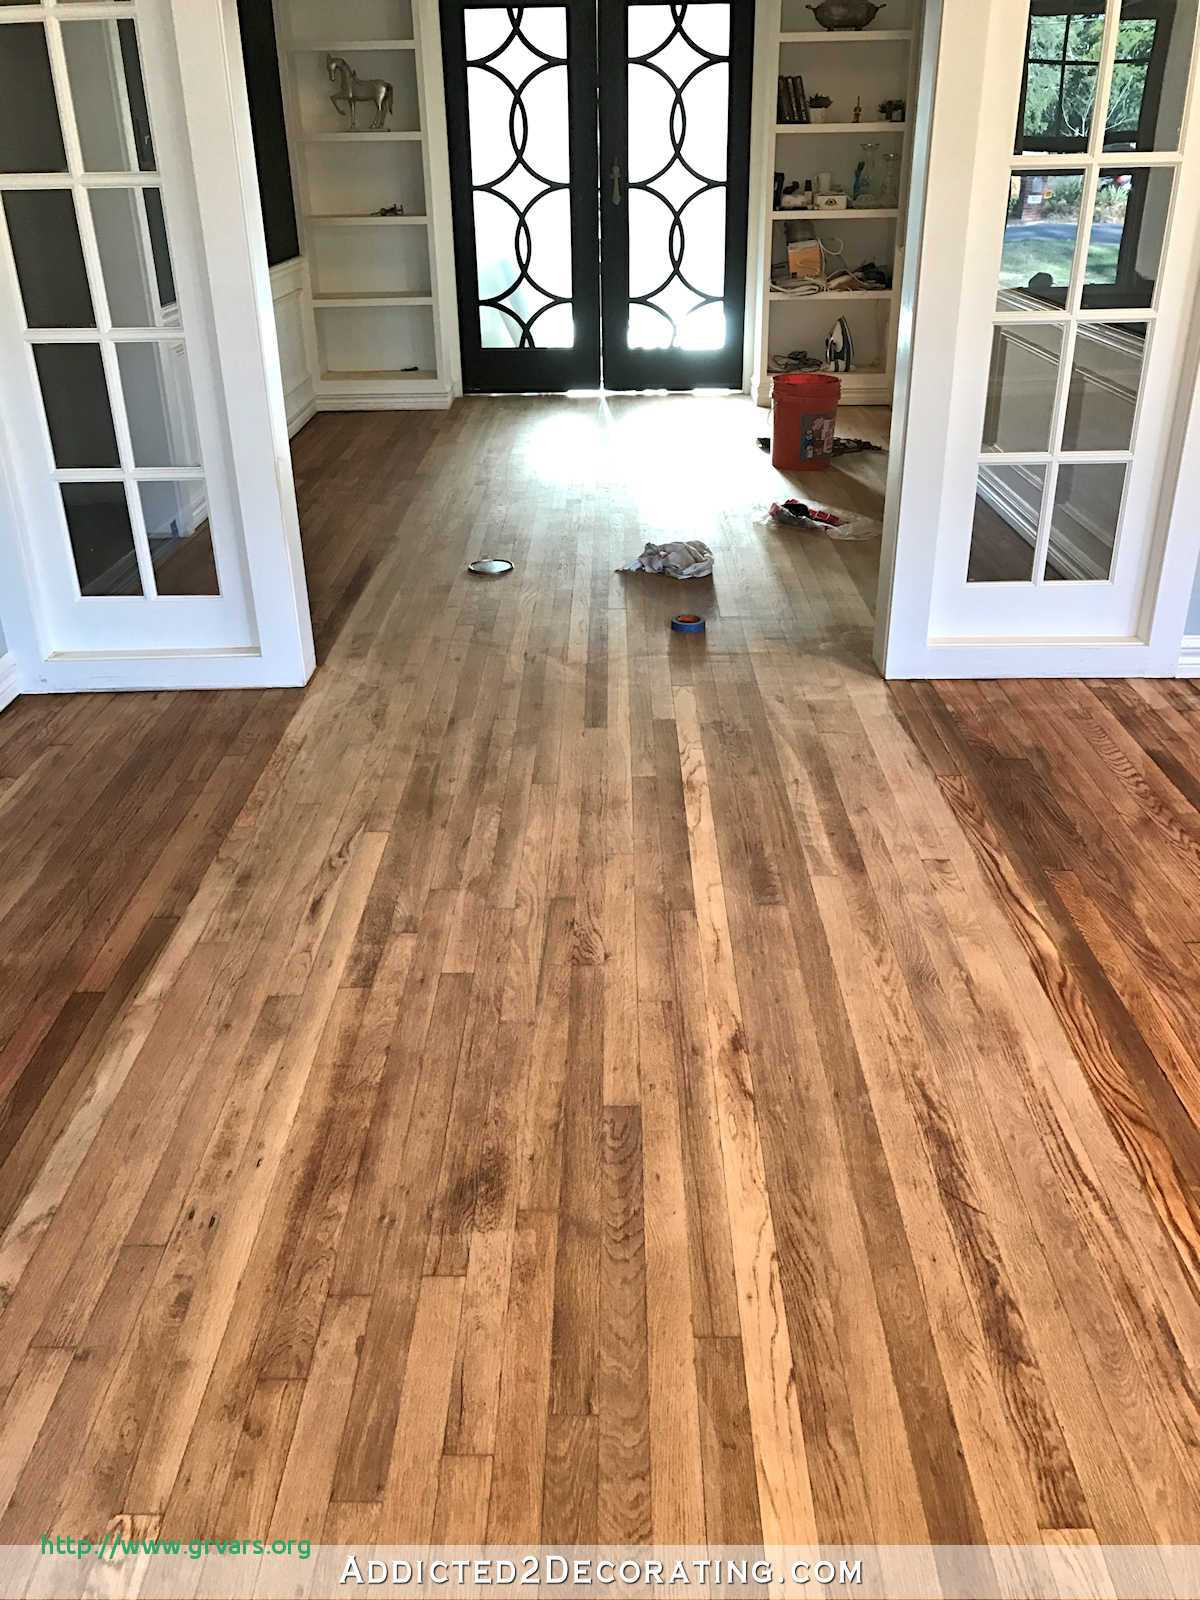 washington dc hardwood flooring of 15 charmant how to seal a hardwood floor ideas blog for staining red oak hardwood floors 5 music room wood conditioner